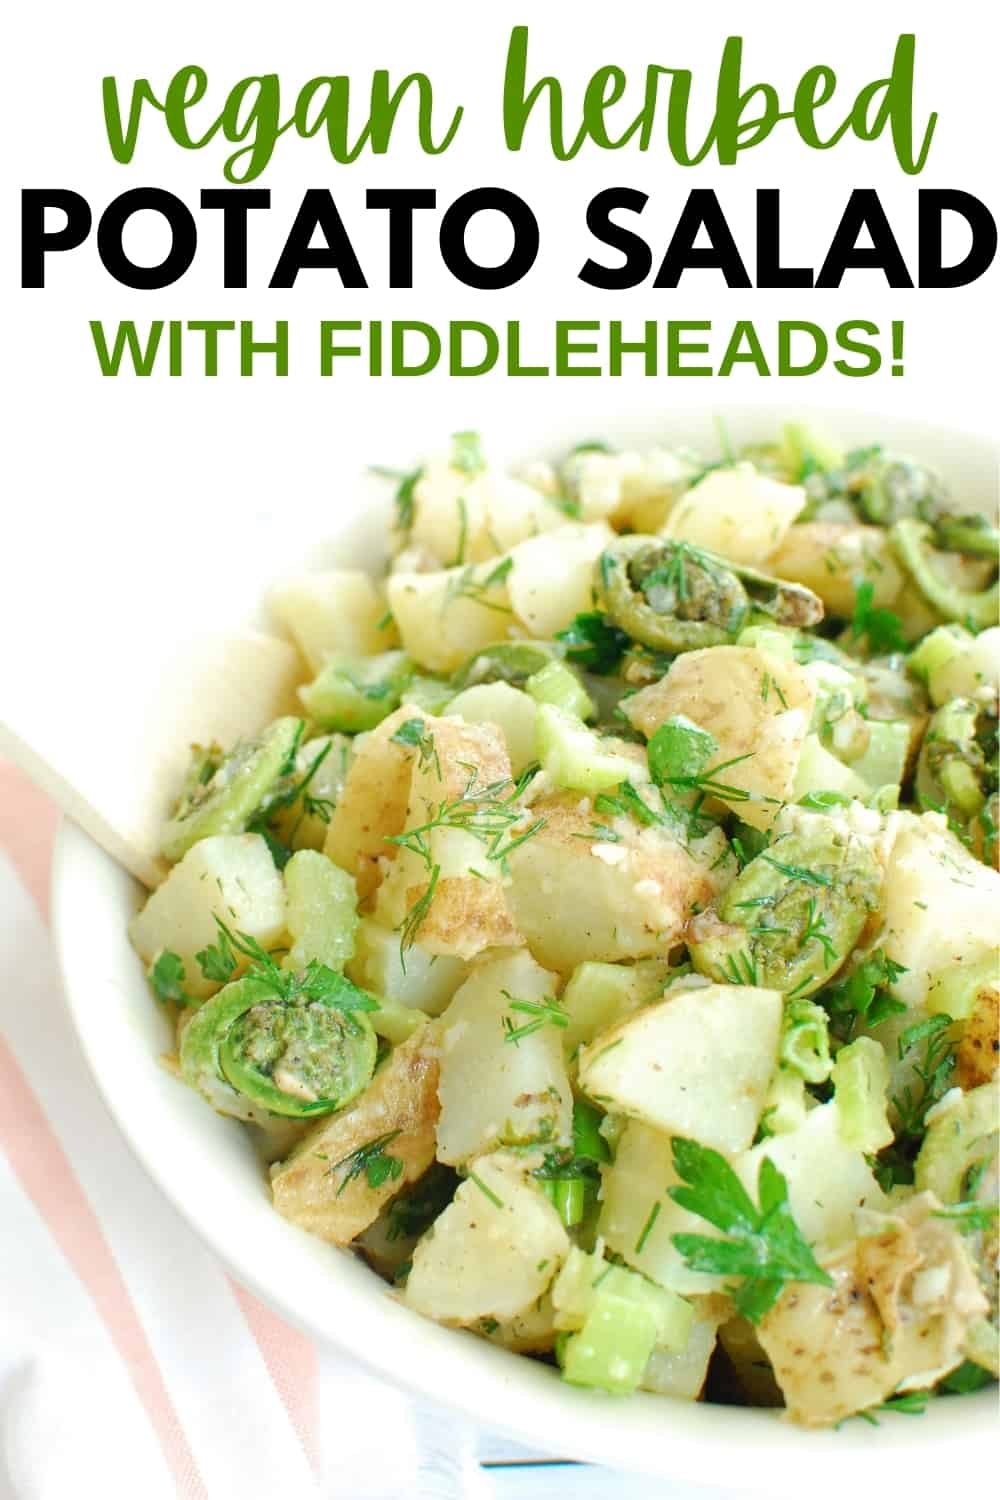 A bowl of healthy herbed potato salad with a wooden spoon, and a text overlay for Pinterest.